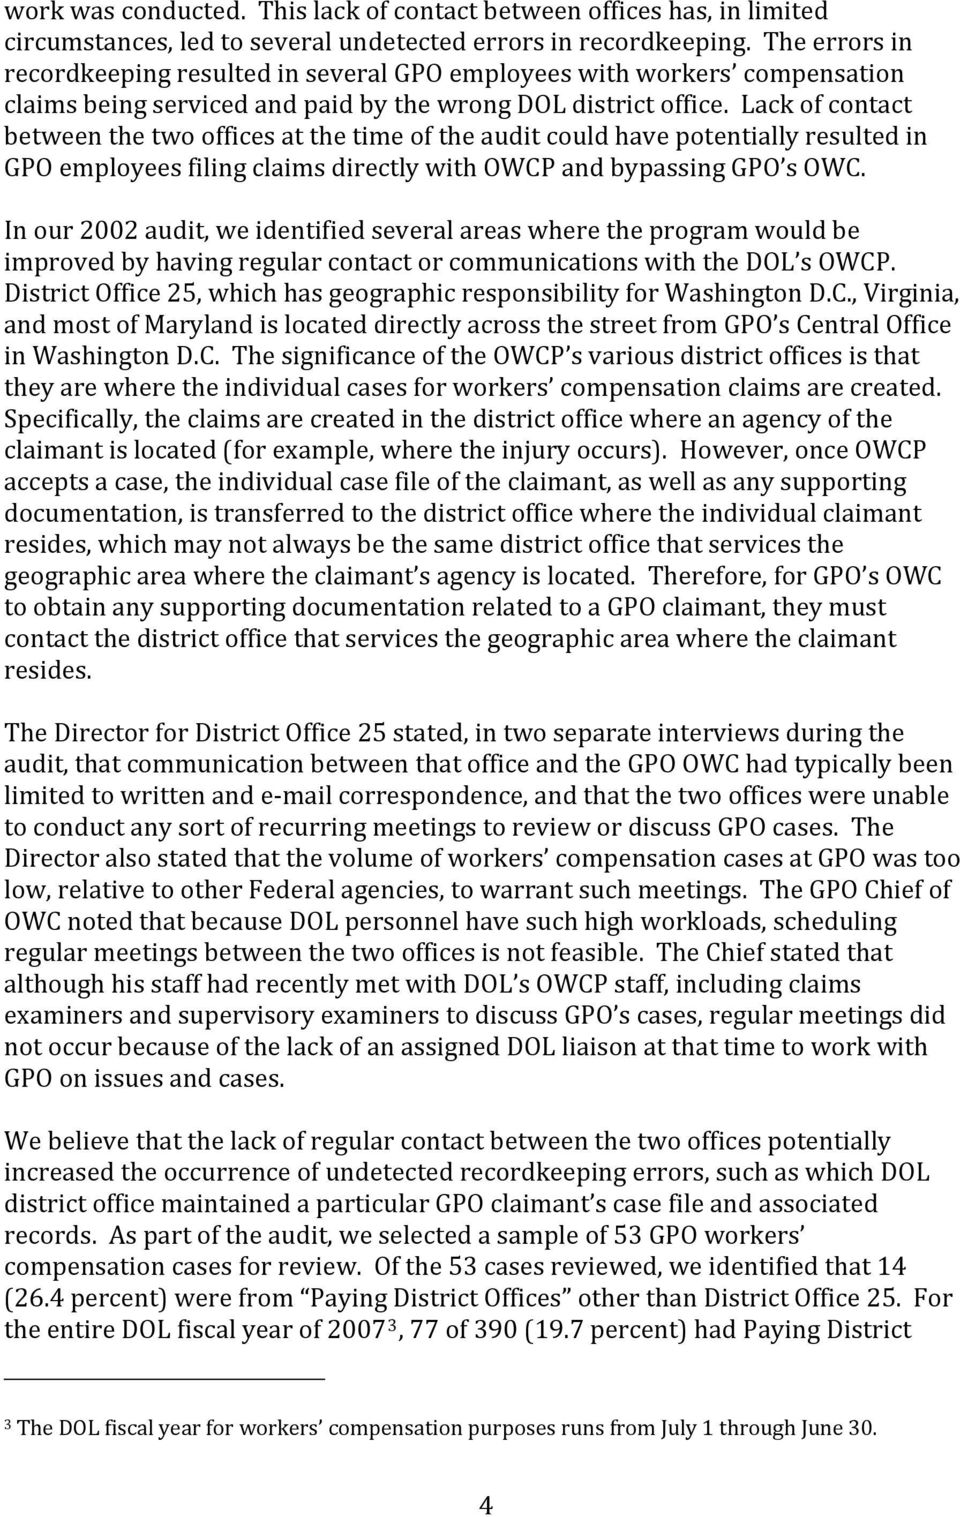 Lack of contact between the two offices at the time of the audit could have potentially resulted in GPO employees filing claims directly with OWCP and bypassing GPO s OWC.